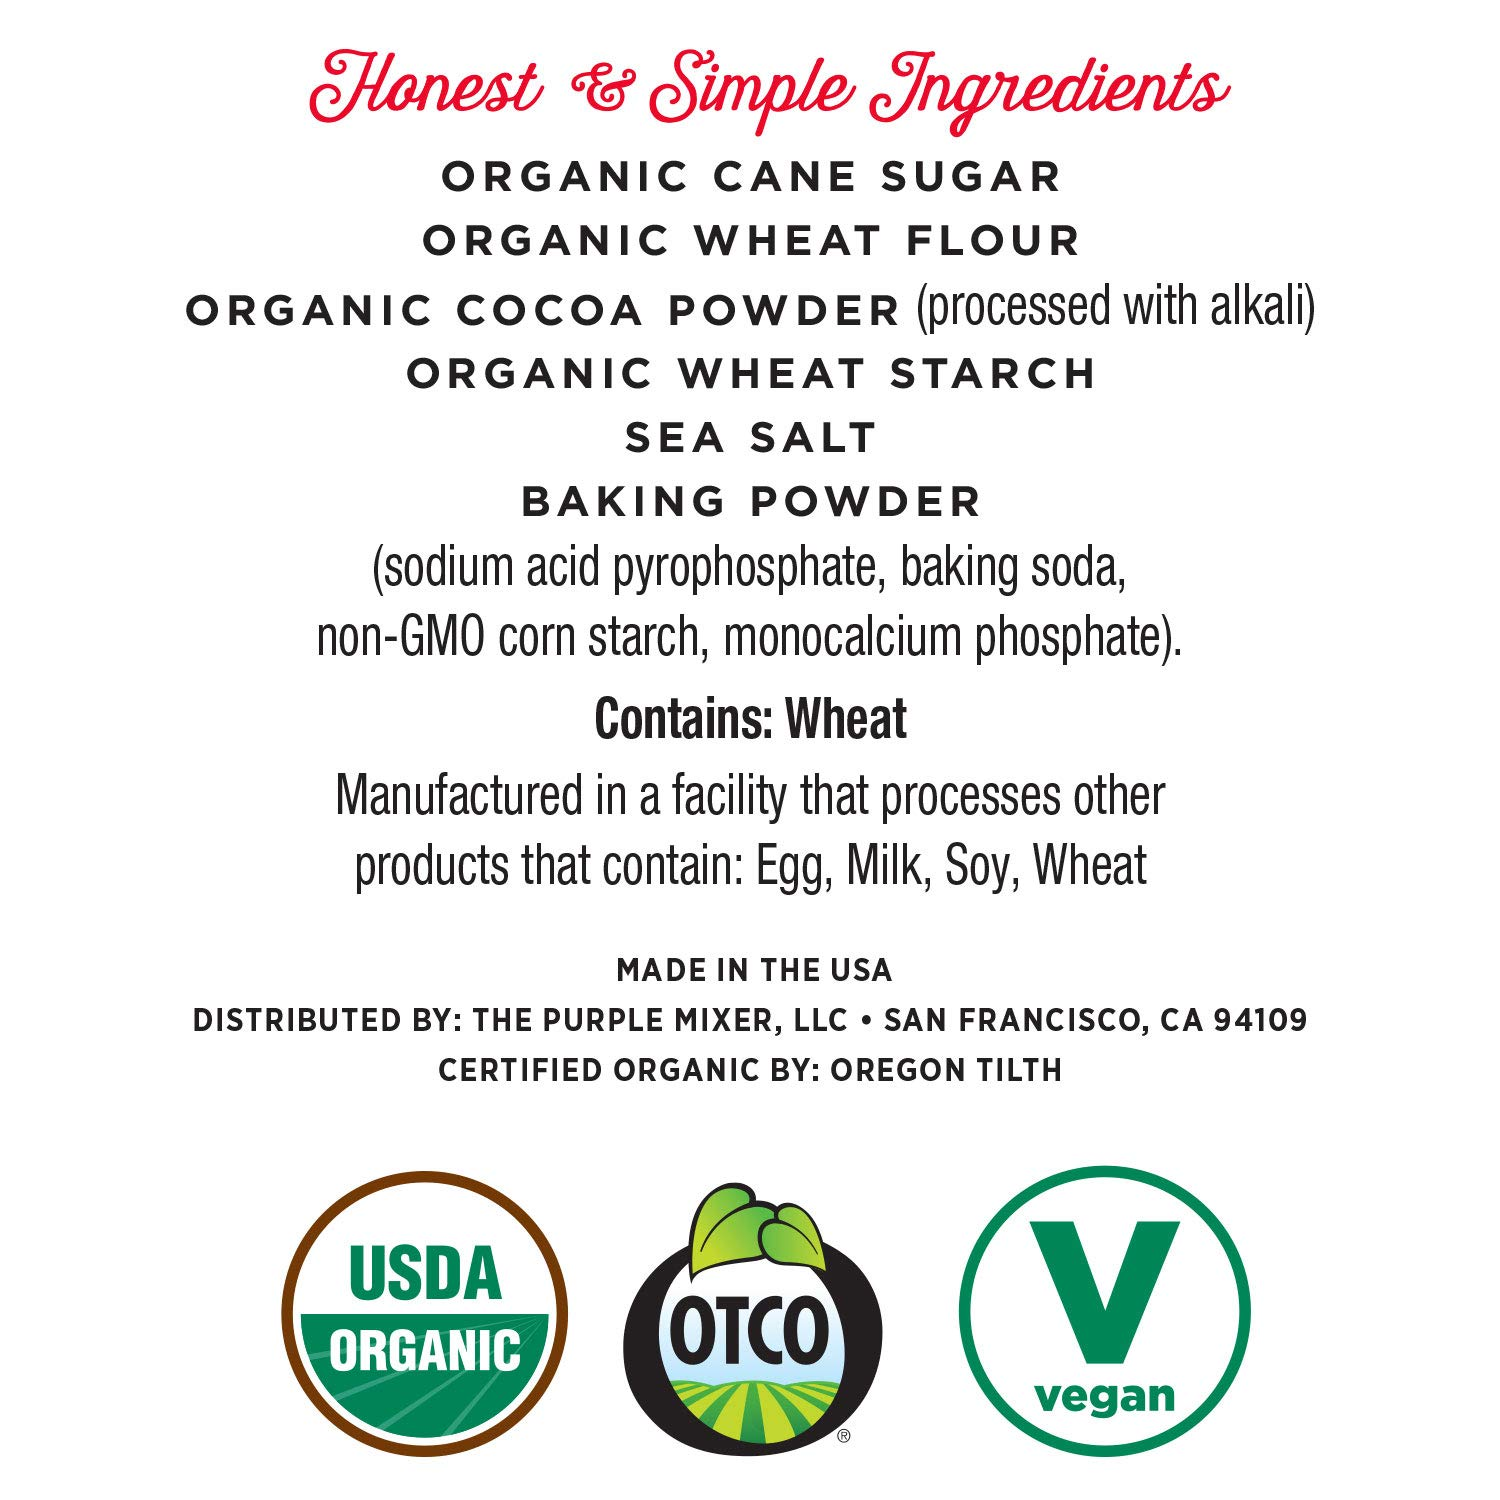 Miss Jones Baking Organic Fudge Brownie Mix, Non-GMO, Vegan-Friendly: Rich Cocoa (Pack of 6) by Miss Jones Baking (Image #3)